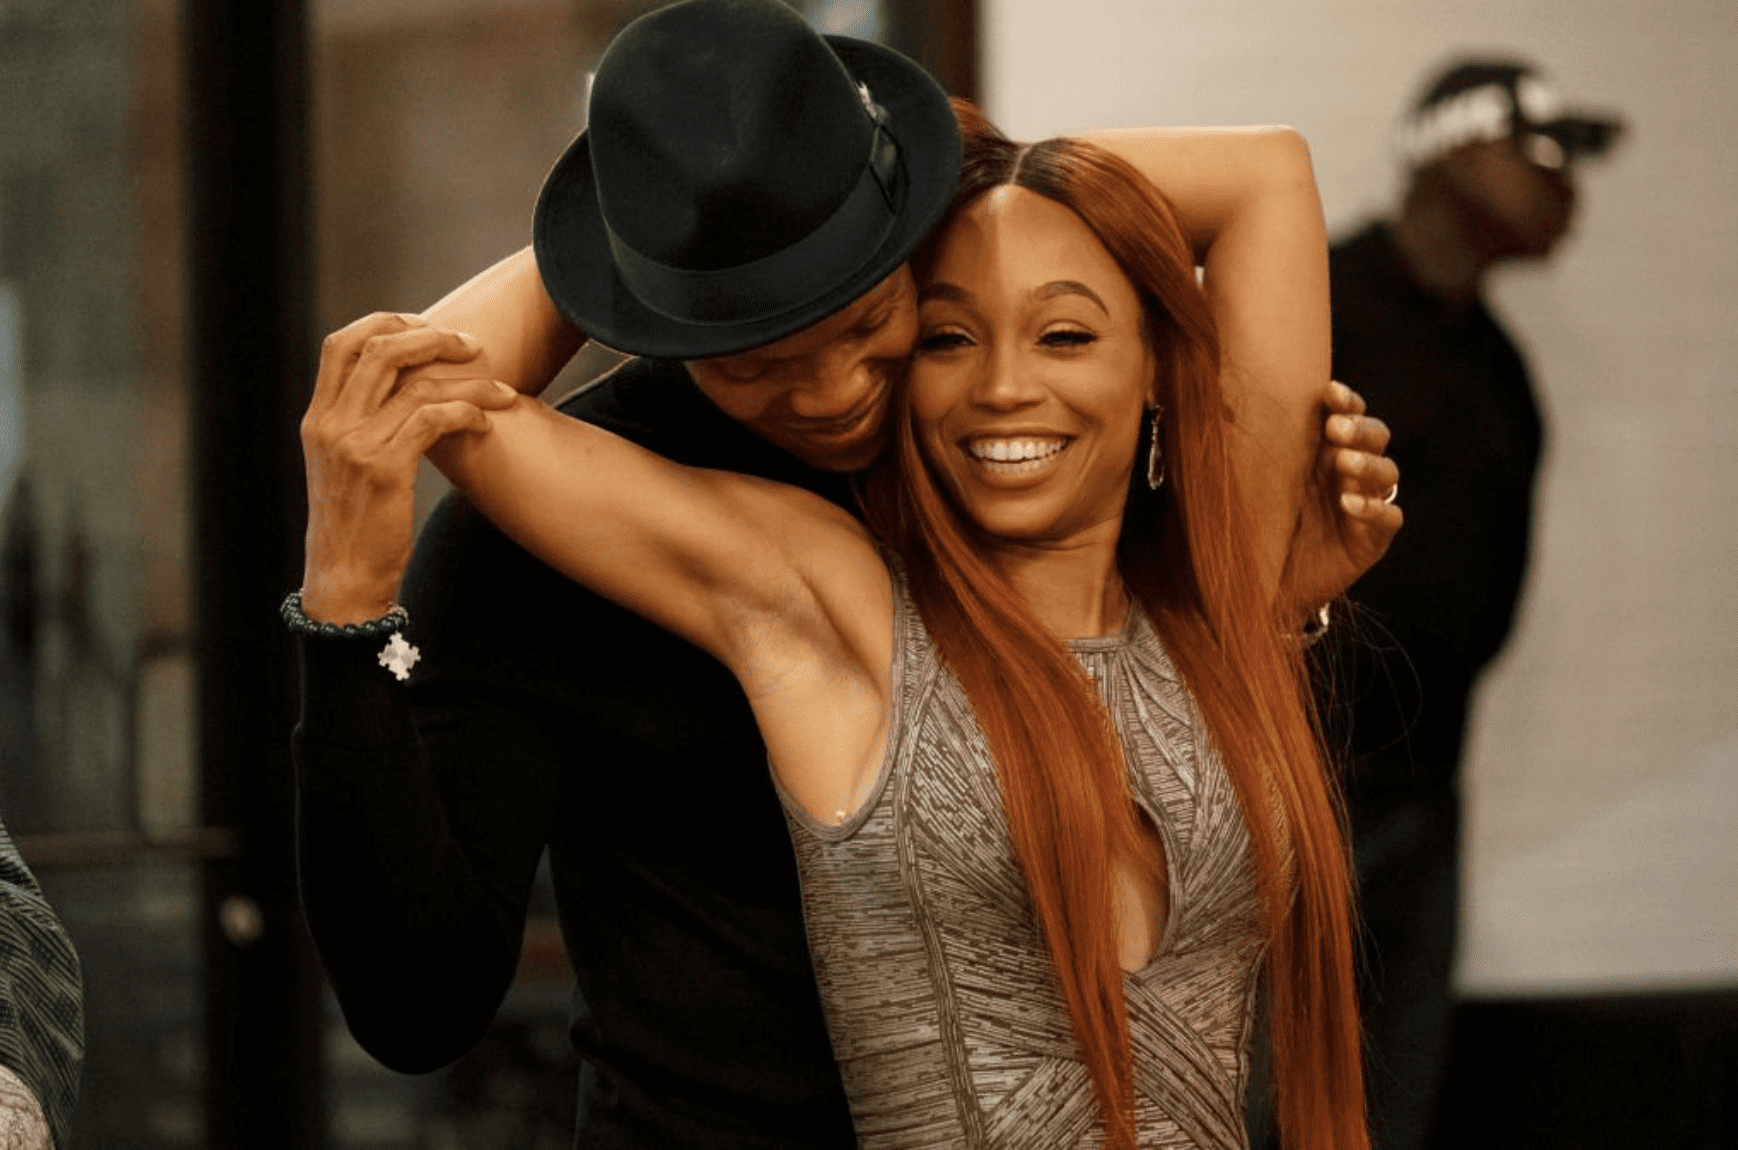 """Ronnie DeVoe and Shamari DeVoe share an embrace on an episode of season 11 of """"The Real Housewives of Atlanta""""onOctober 24, 2018.